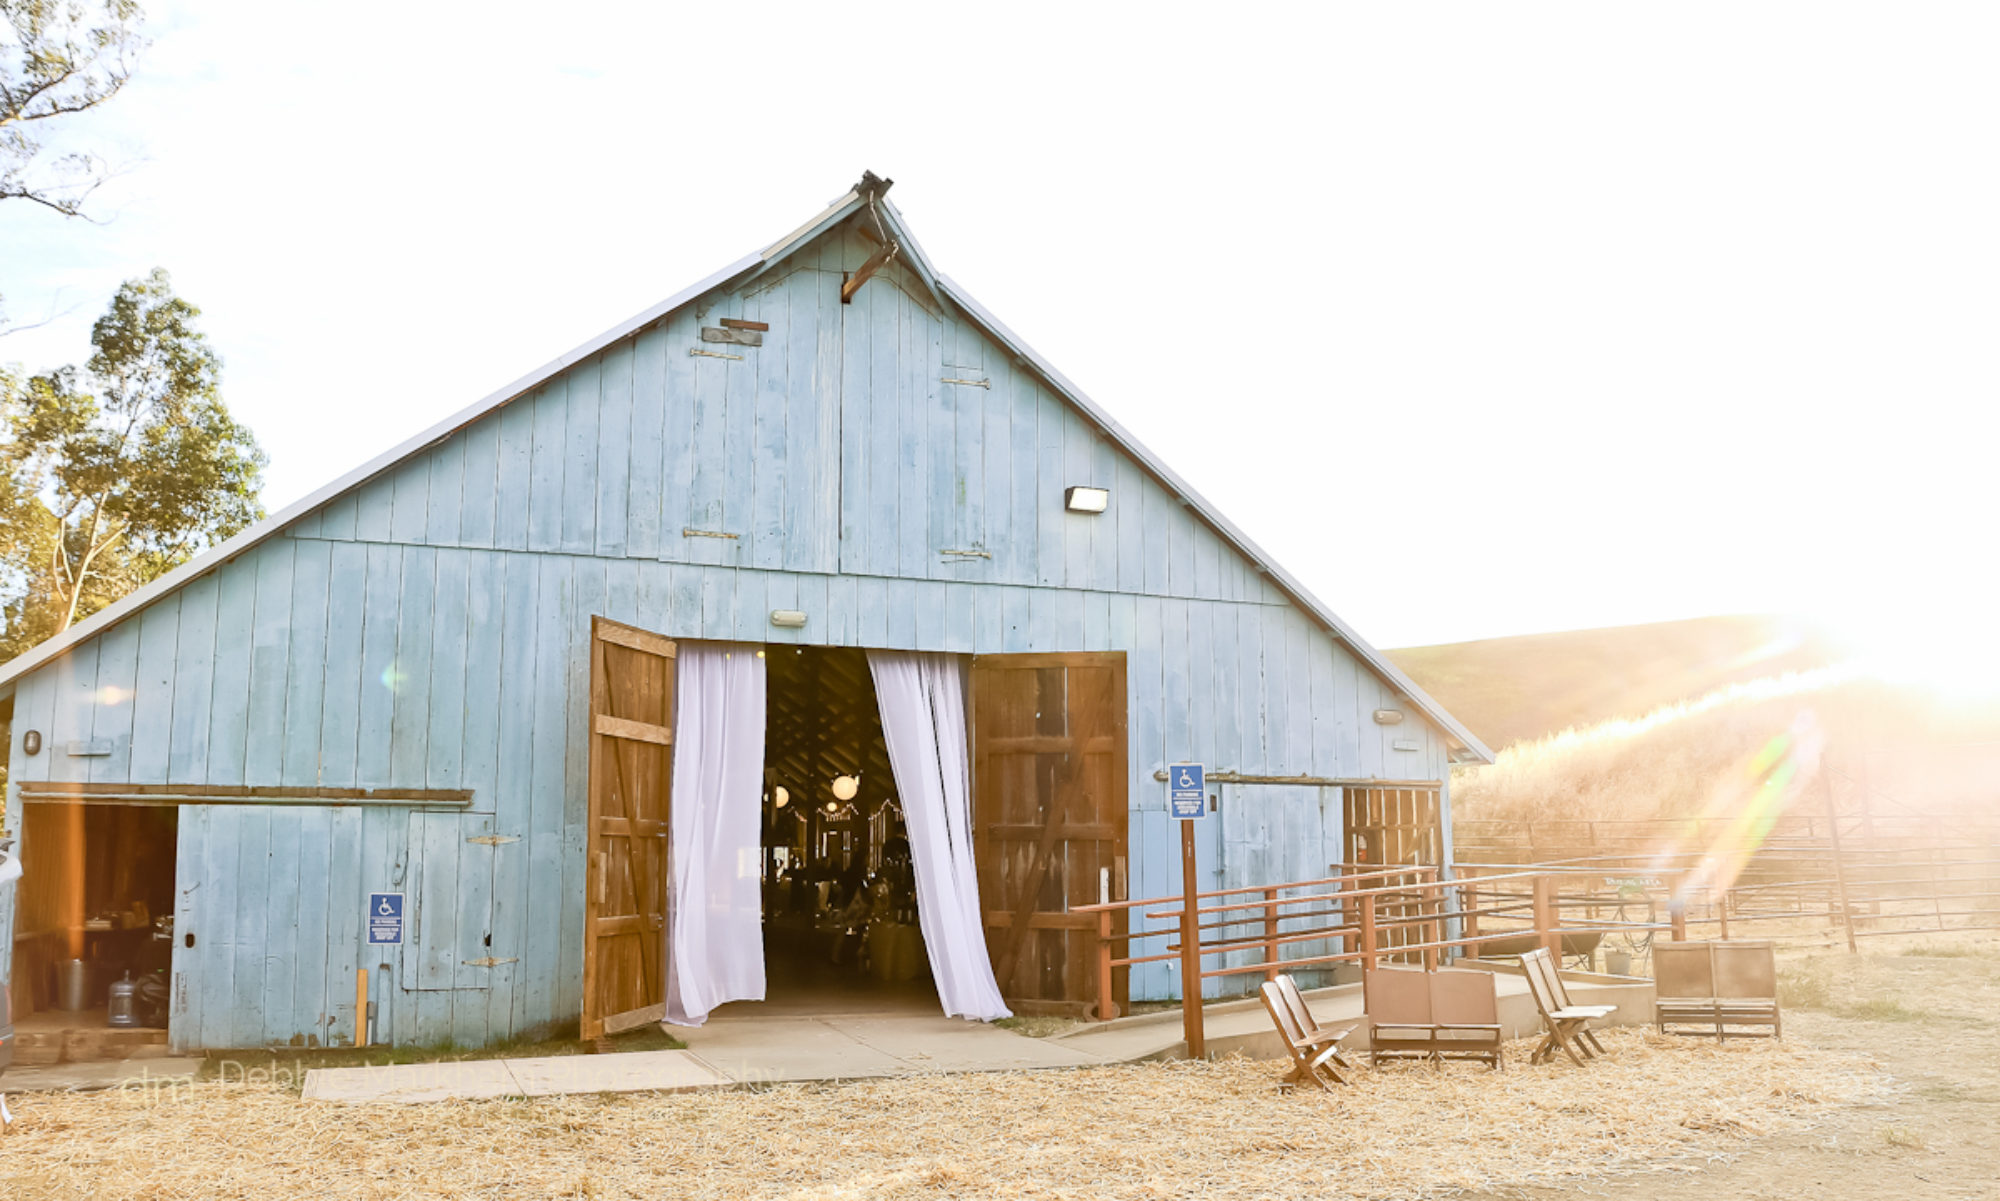 Debbie Markham Photography in Cambria // Wedding Photographer // Family Photographer // Cayucos Photographer // Morro Bay Photographer // Los Osos Photographer // Templeton Photographer // California Central Coast